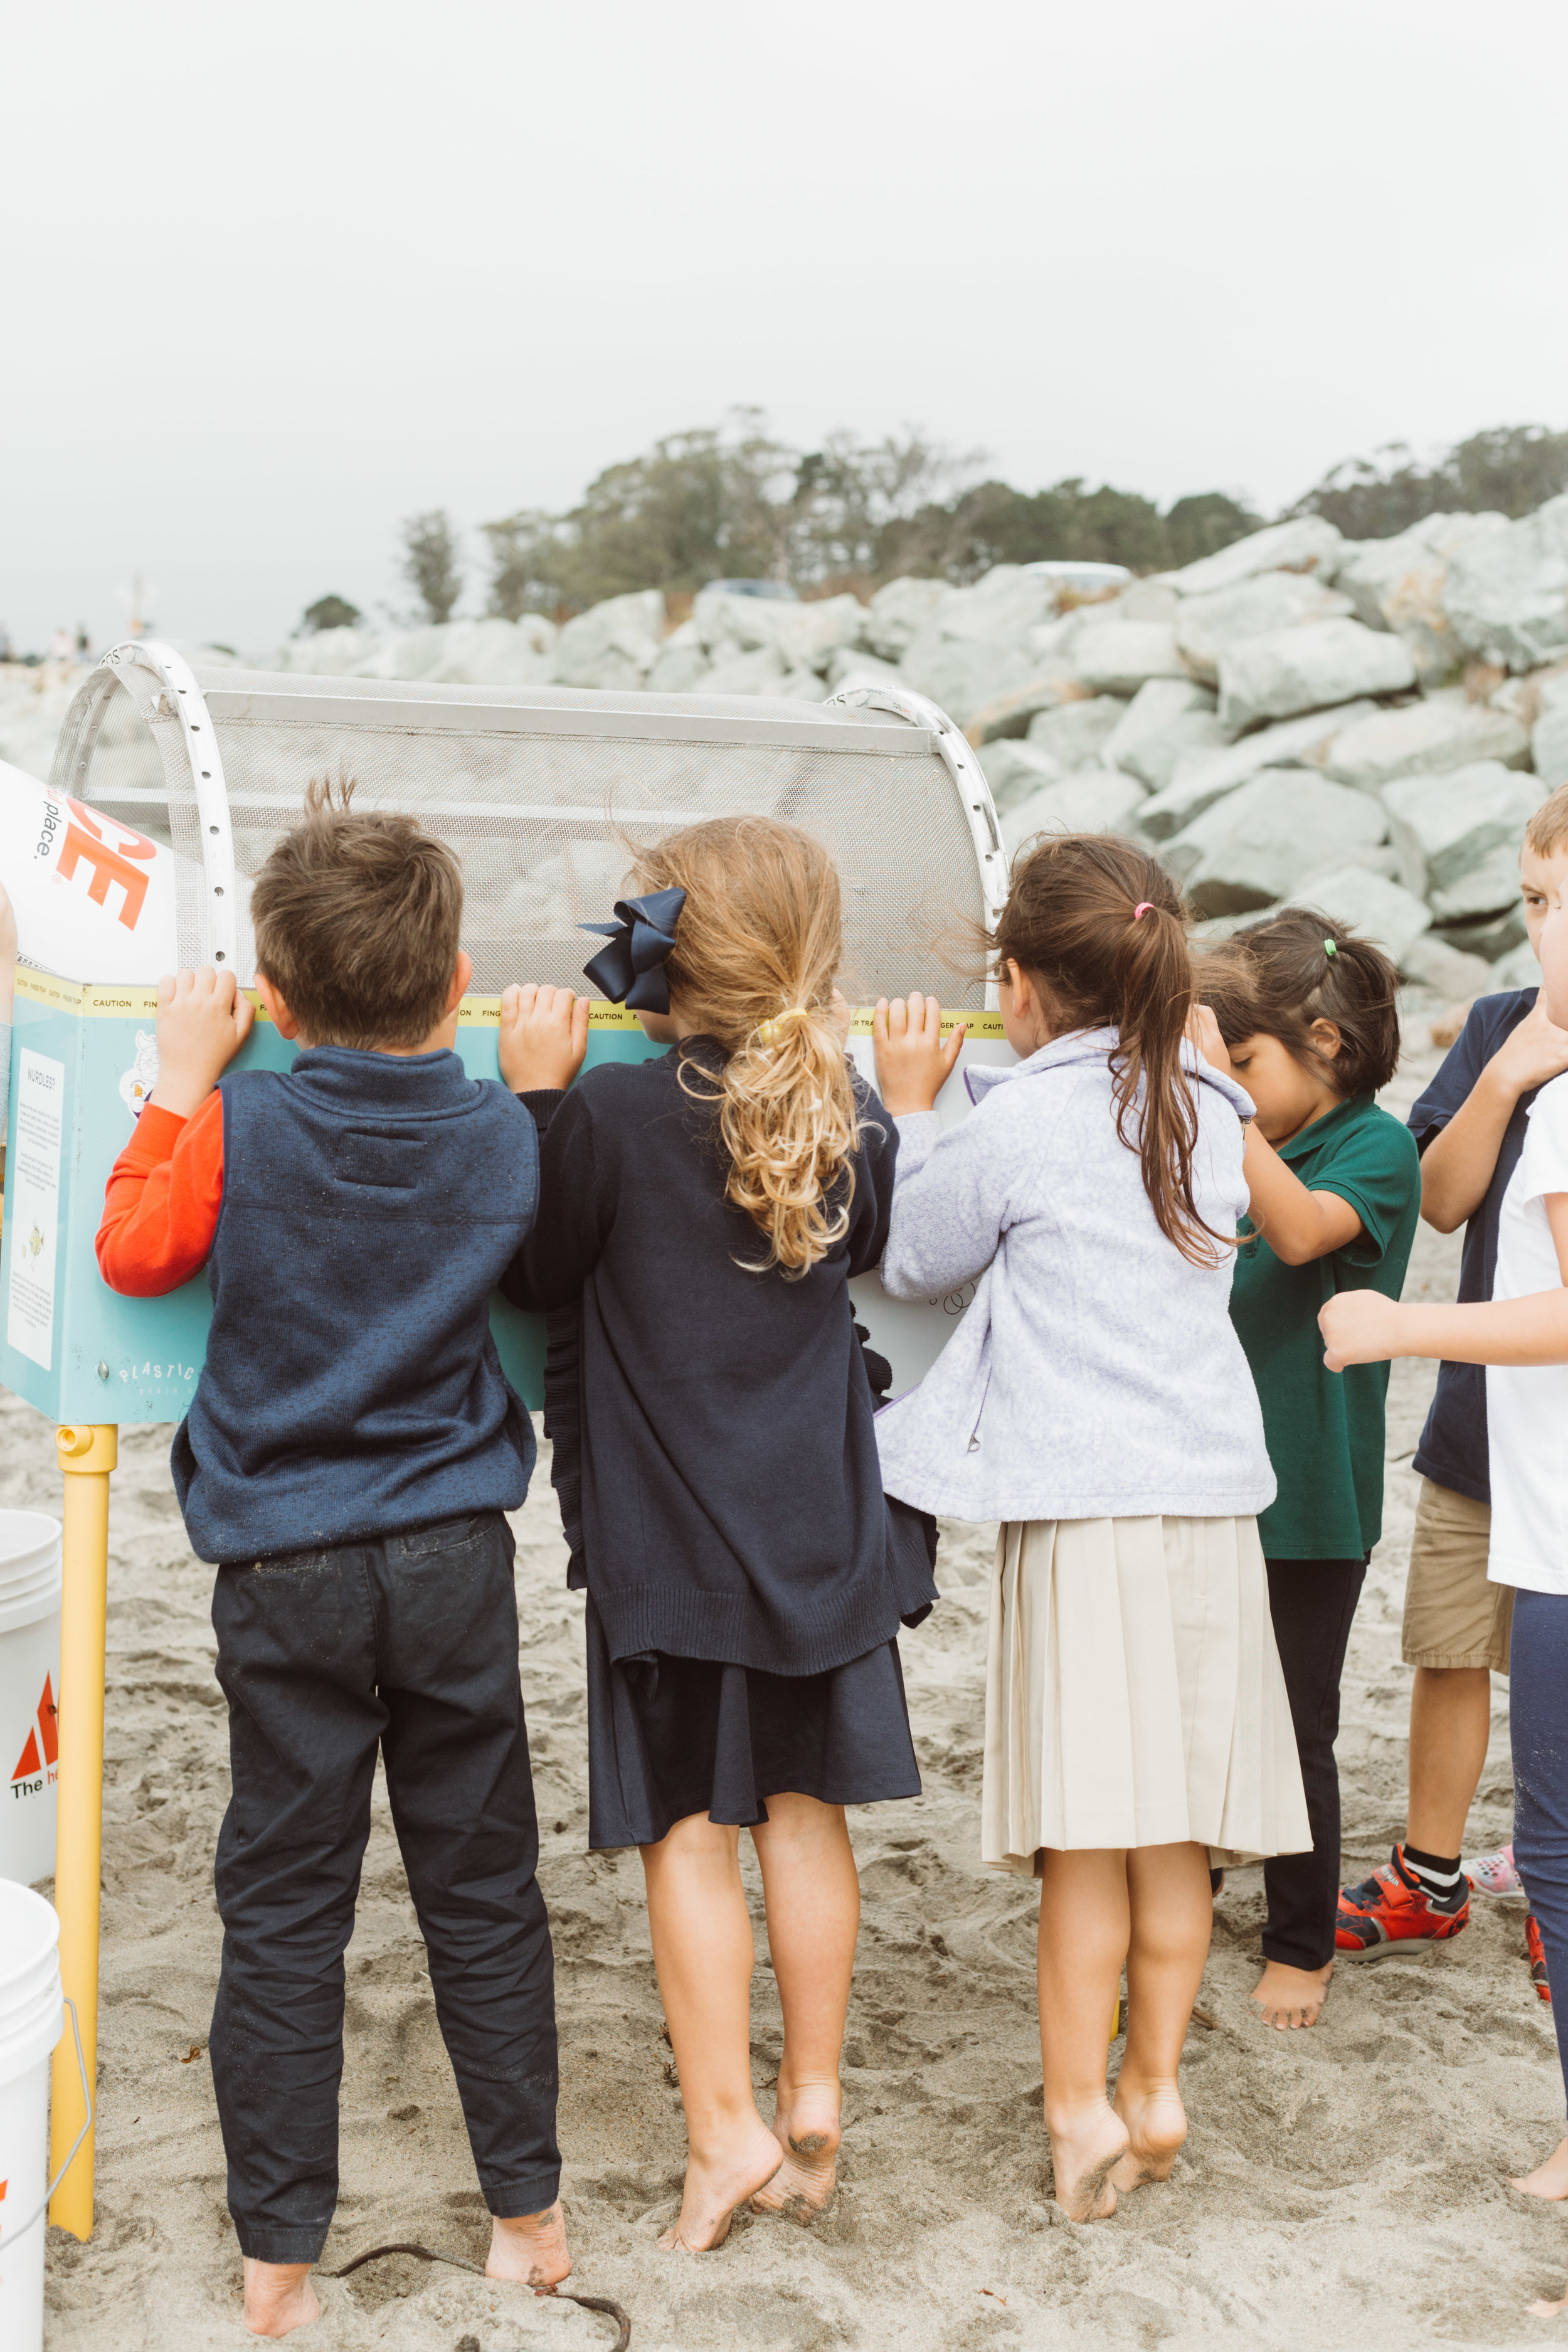 Sea Hugger's Nurdle Trommel helps teach kids about the dangers of plastic pollution.